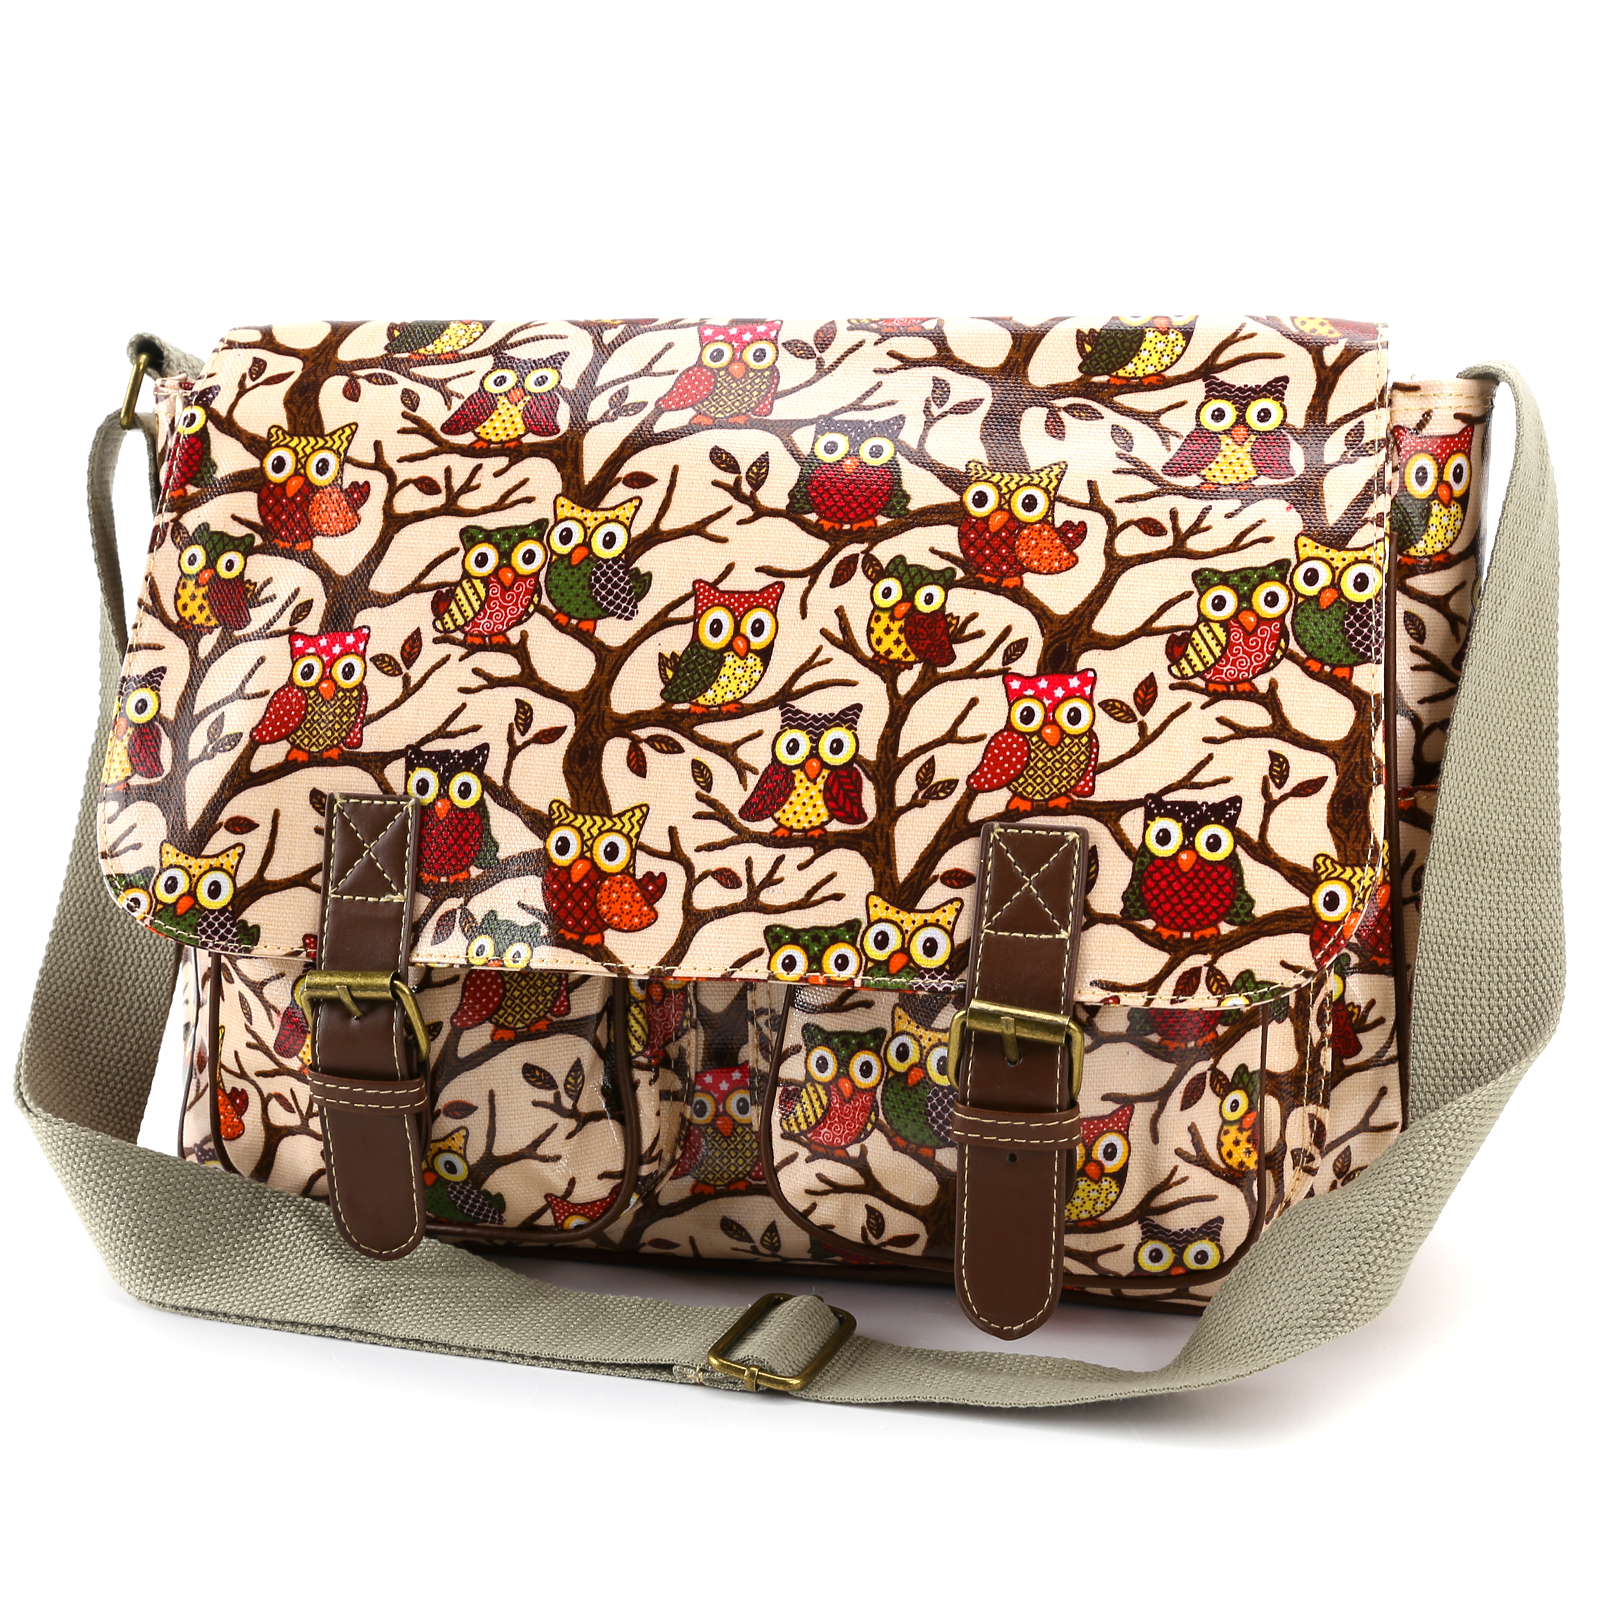 Bolsa Estilo Satchel : Oilcloth owl print cross body satchel shoulder saddle bag